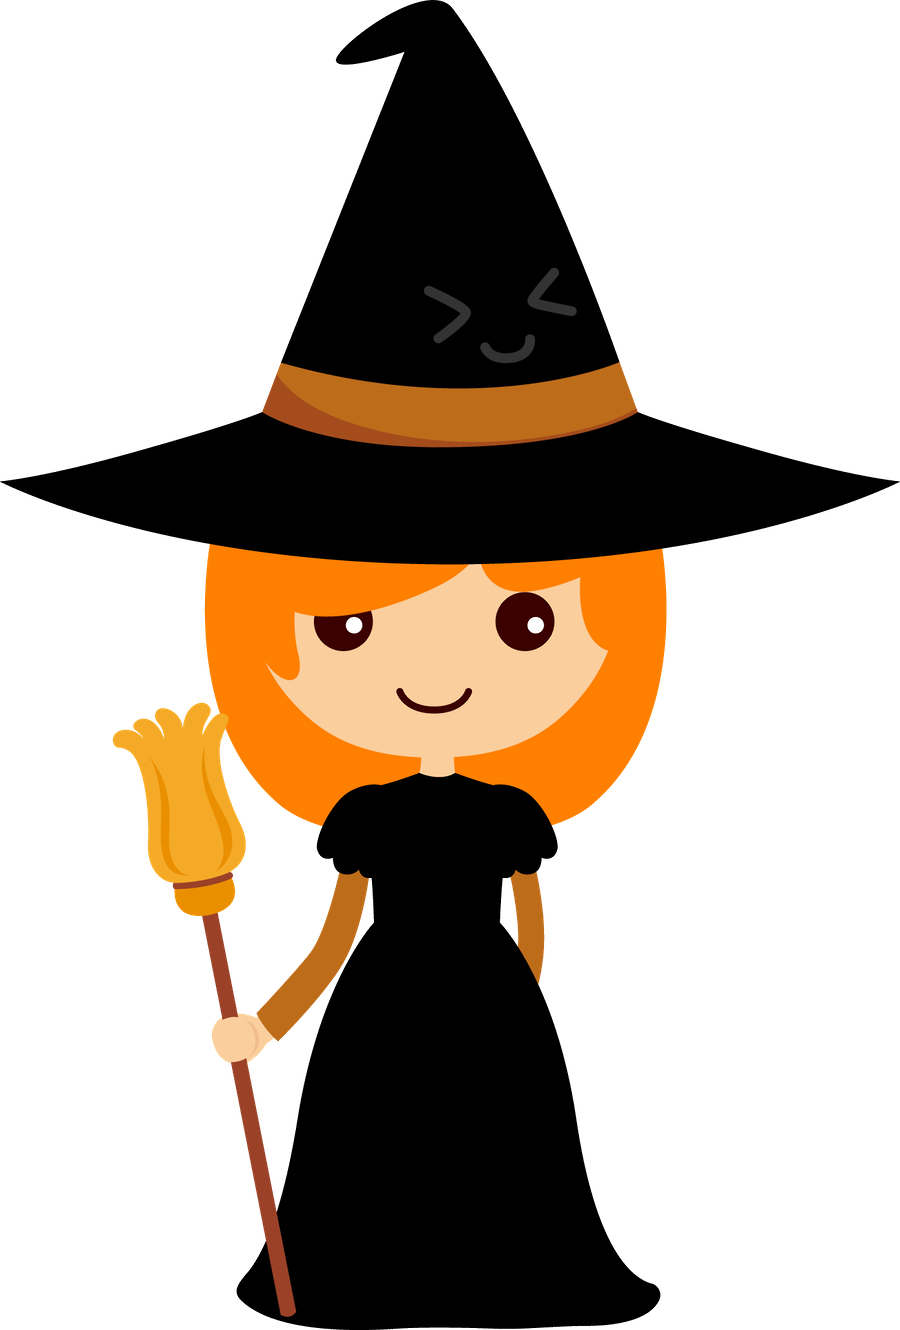 O m gico de. Witch clipart three witch